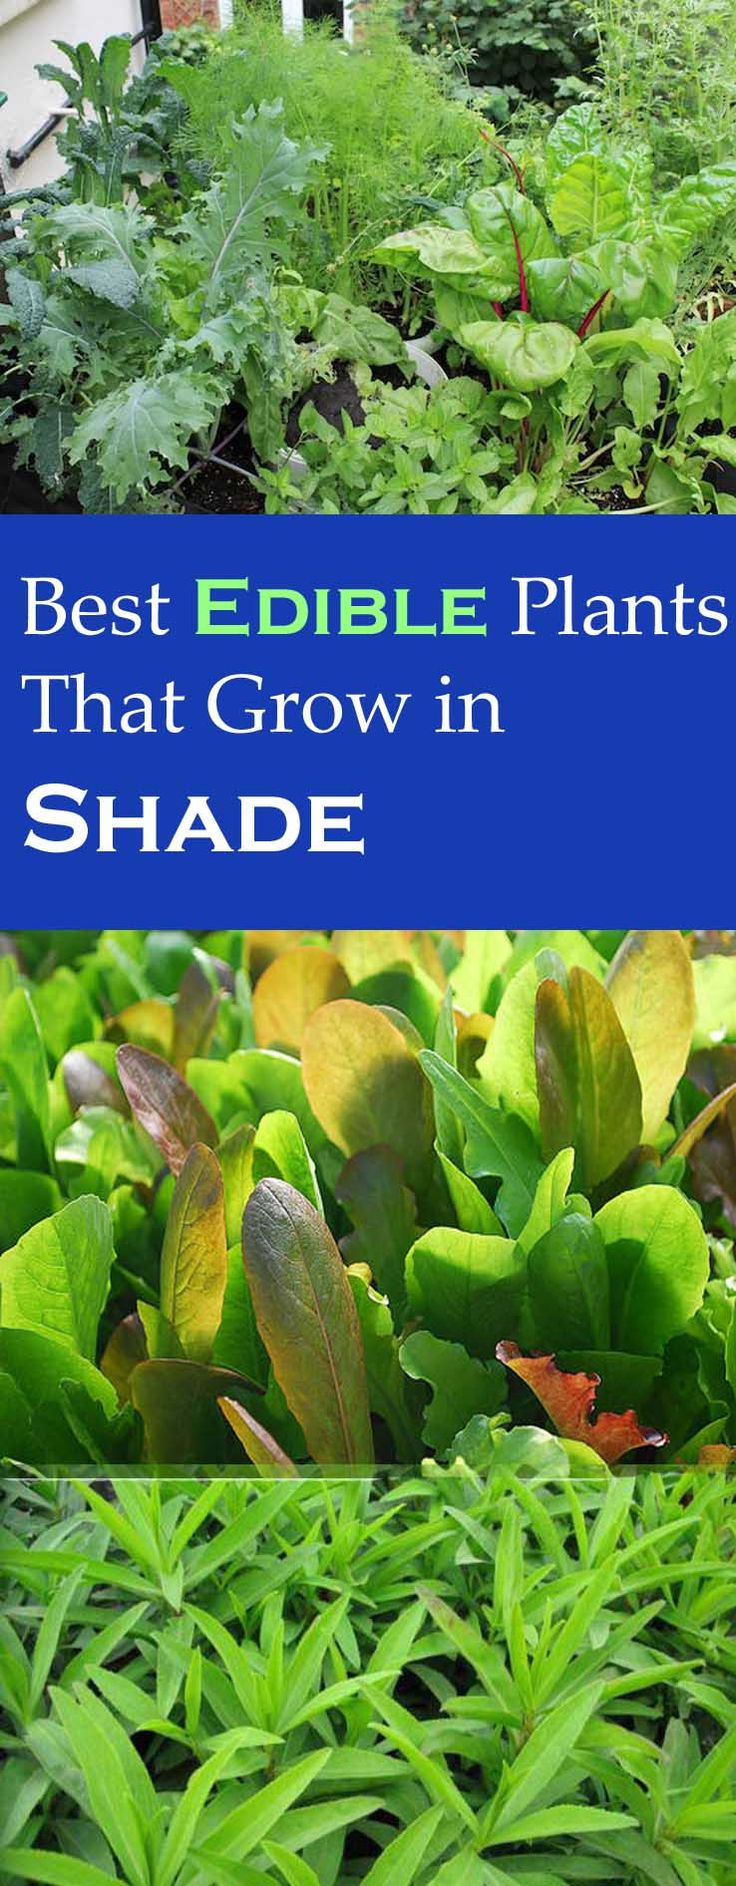 Best Edible Plants you can Grow in Shade